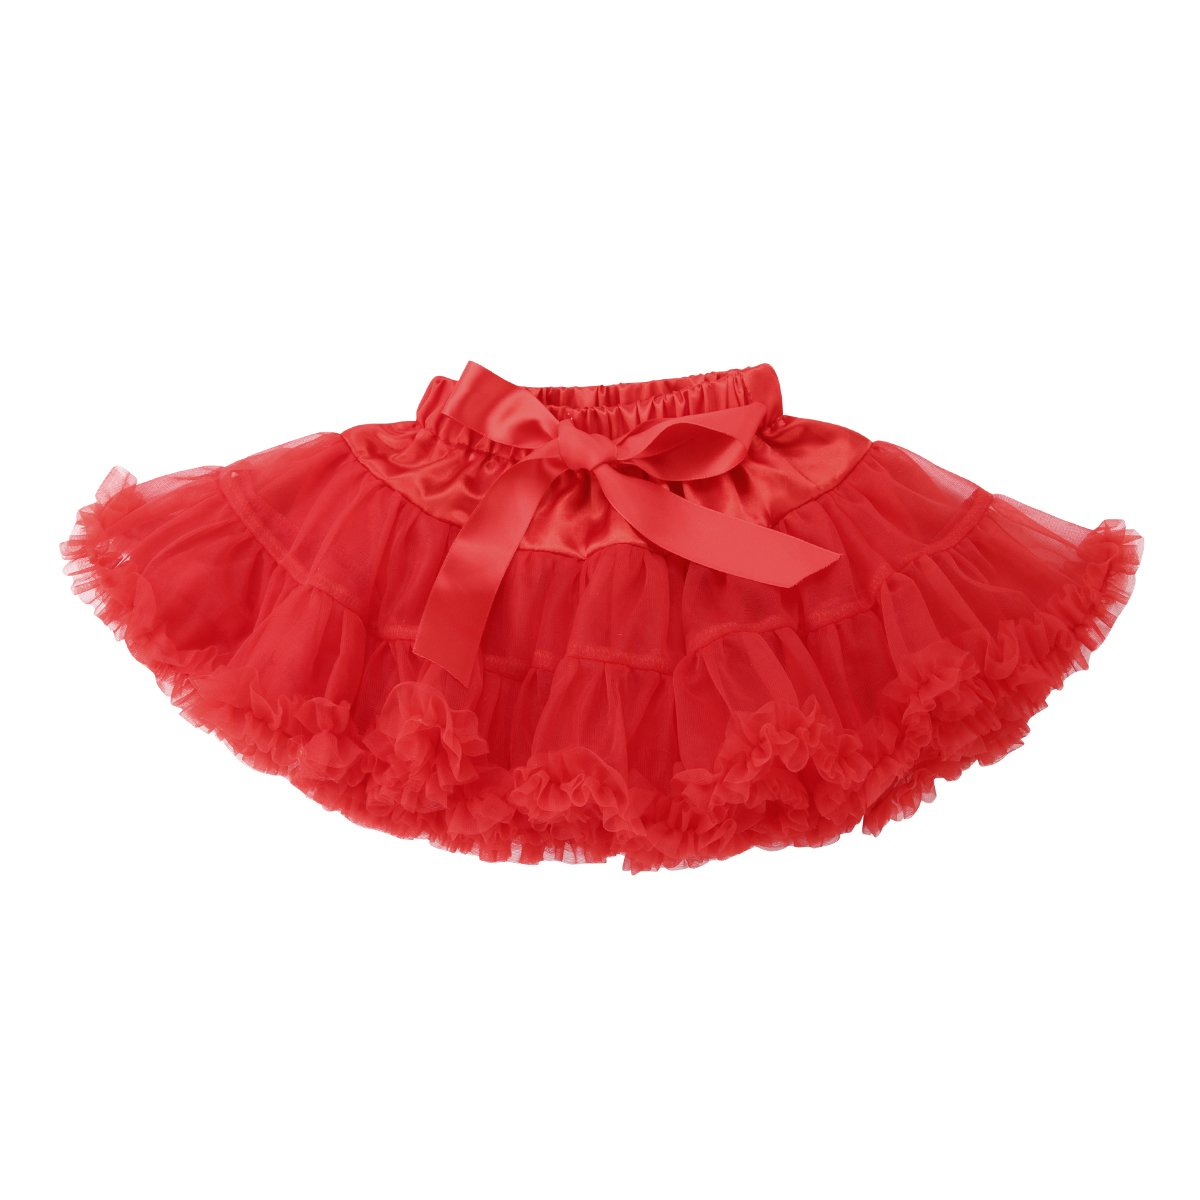 One opening Newborn Baby Girl Lace Skirt Infant Girls Floral Party Tutu Lace Dress Skirt Girls Dance Tutu Pettiskirt 0-24M 0-24 Months)